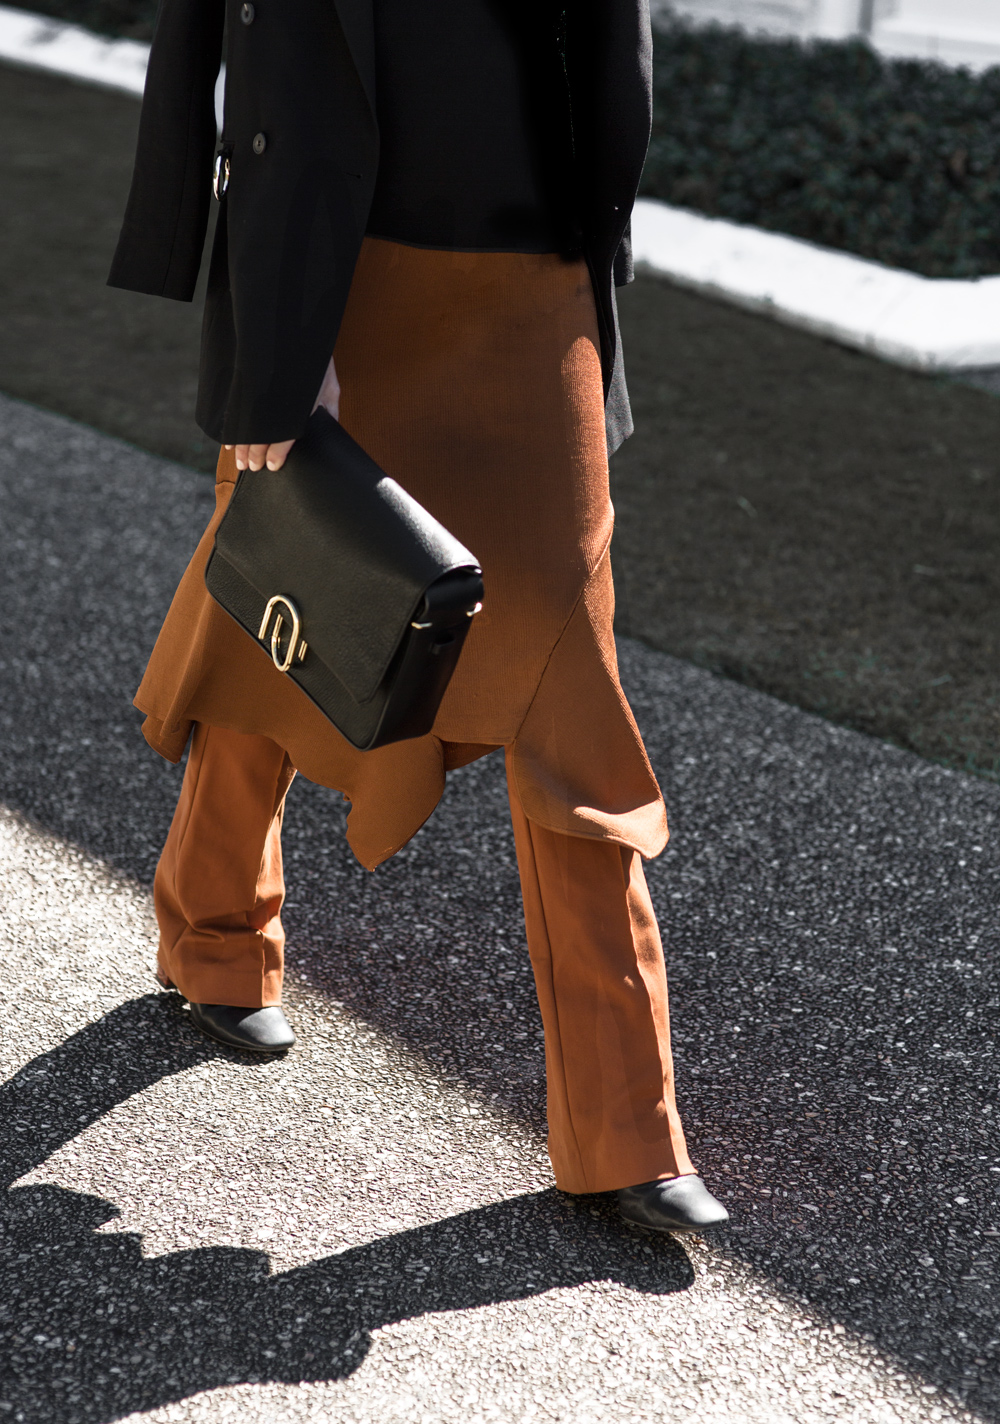 McQ Blazer, Toni Maticevski, rust skirt, phillip lim bag, phillip bag, phillip alix bag, flares, outfit, holly ryan, holly ryan jewellery, amanda shadforth, oracle fox